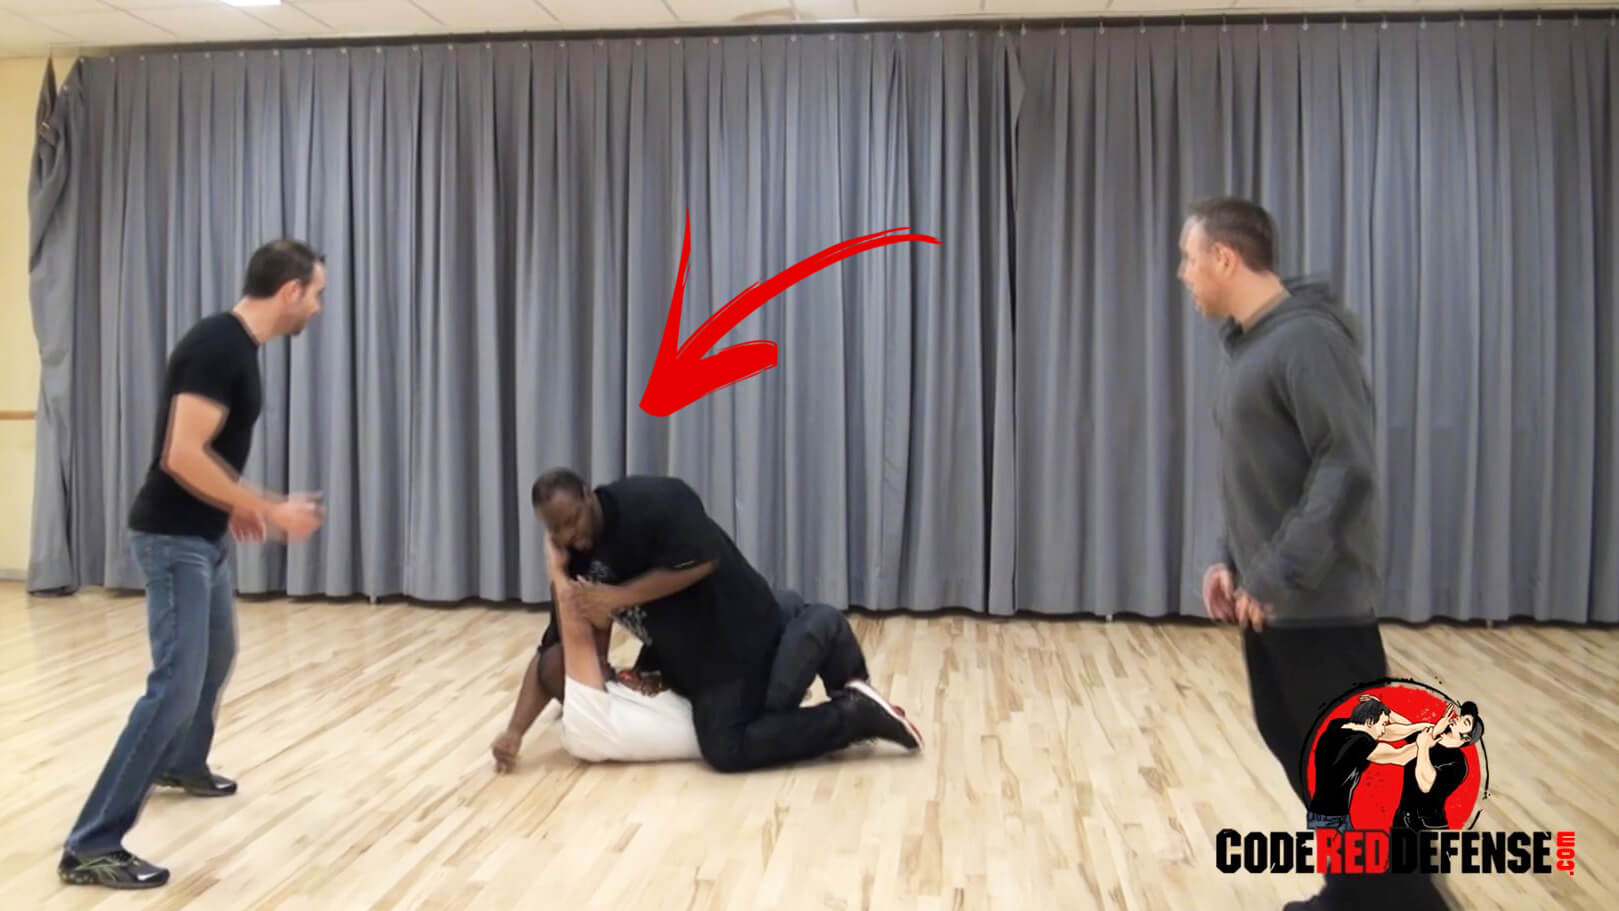 self defense drill on how to protect yourself from multiple attackers